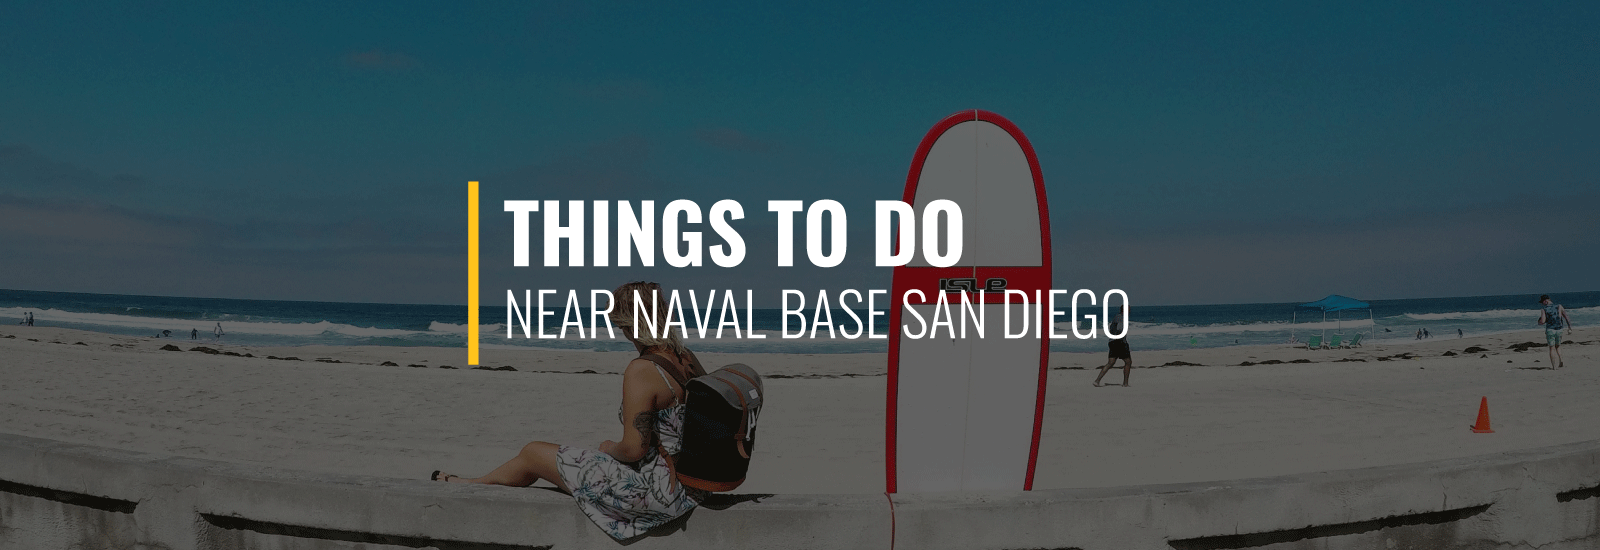 Things to Do Near Naval Base San Diego